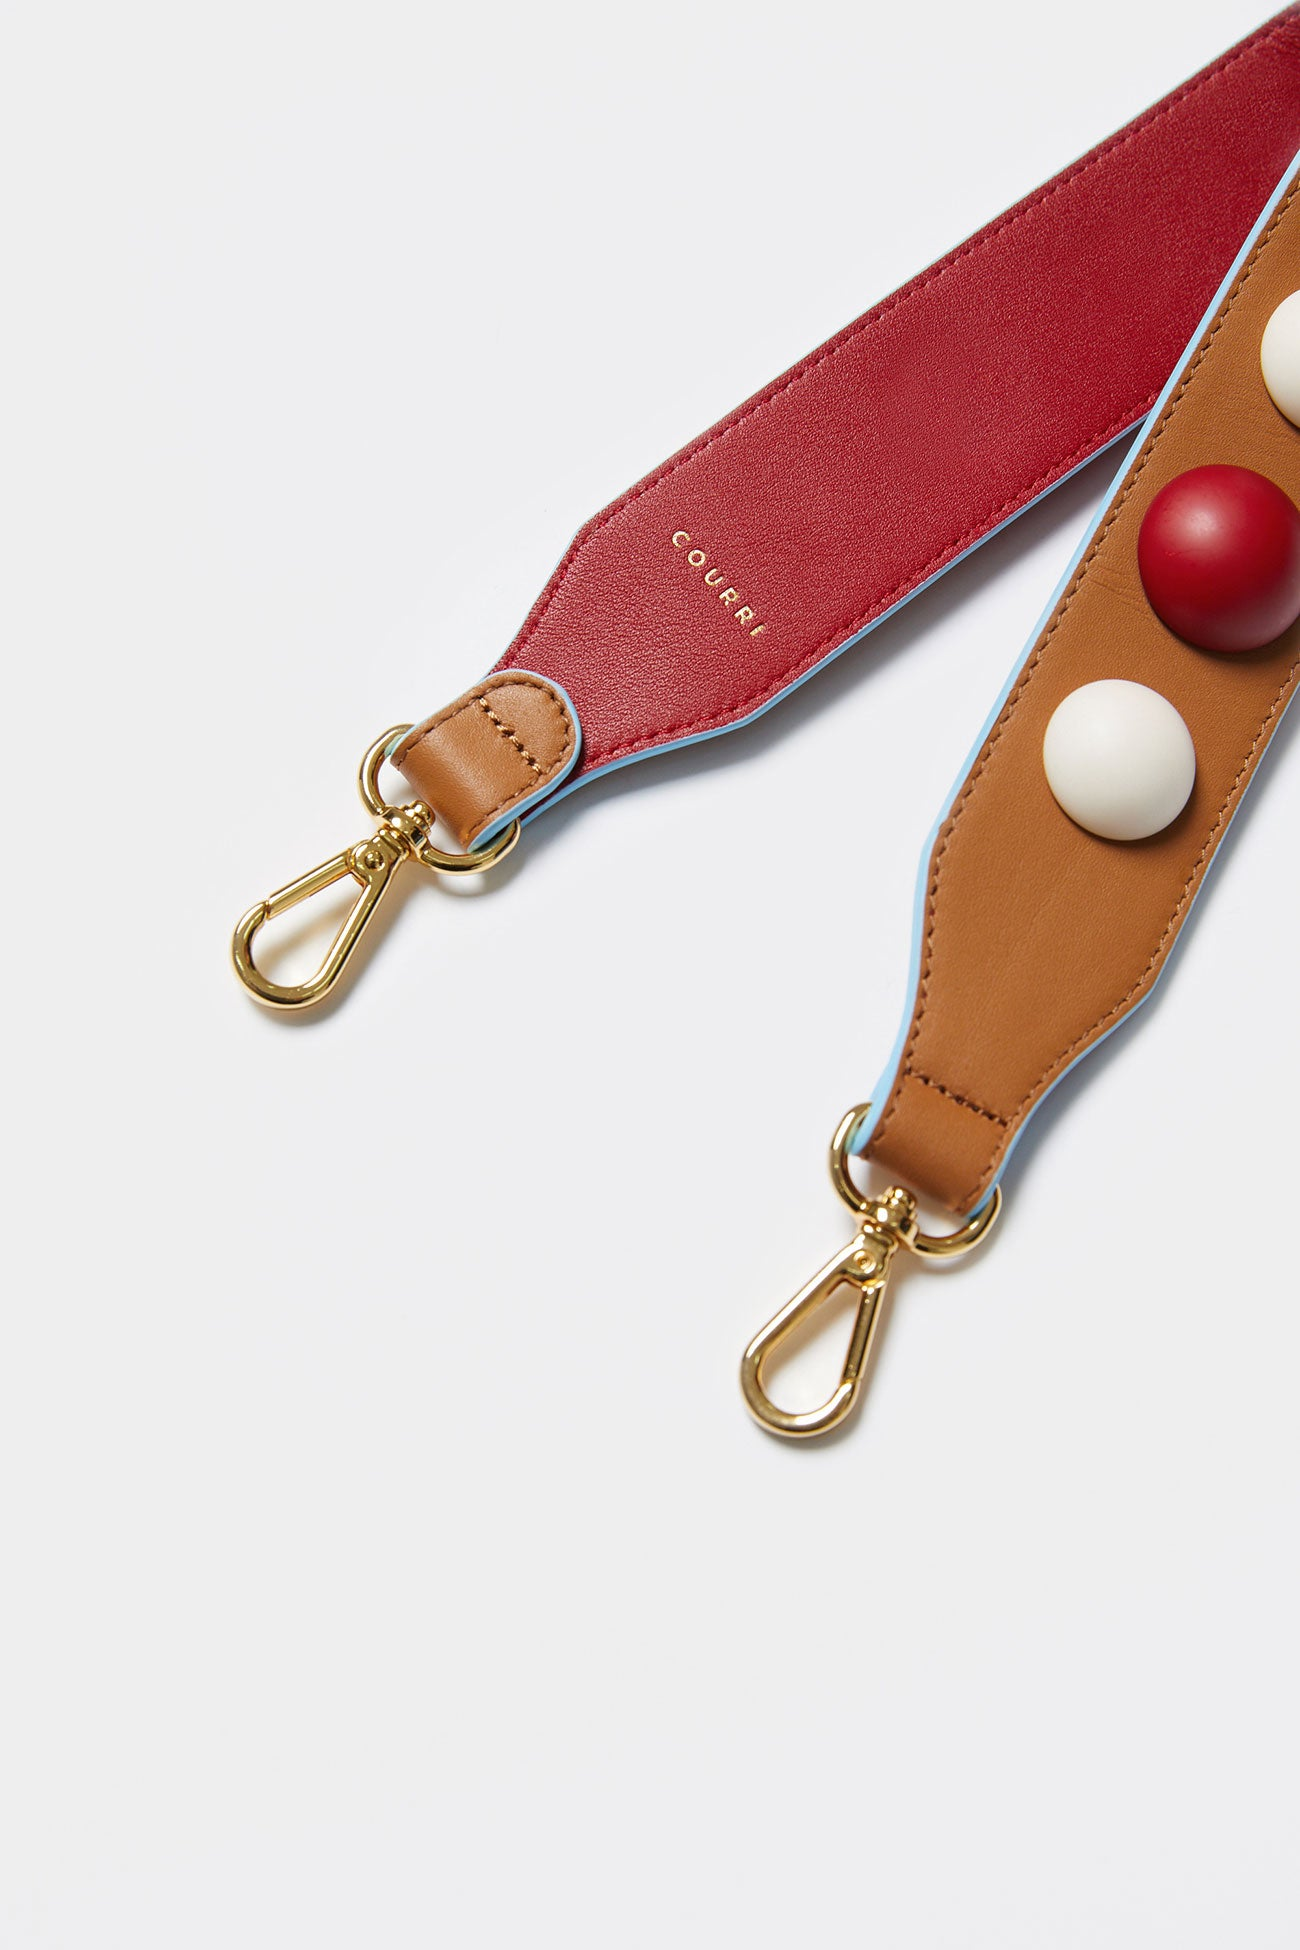 RED MULTI CODIE EMBELLISHED LEATHER STRAP [Short]